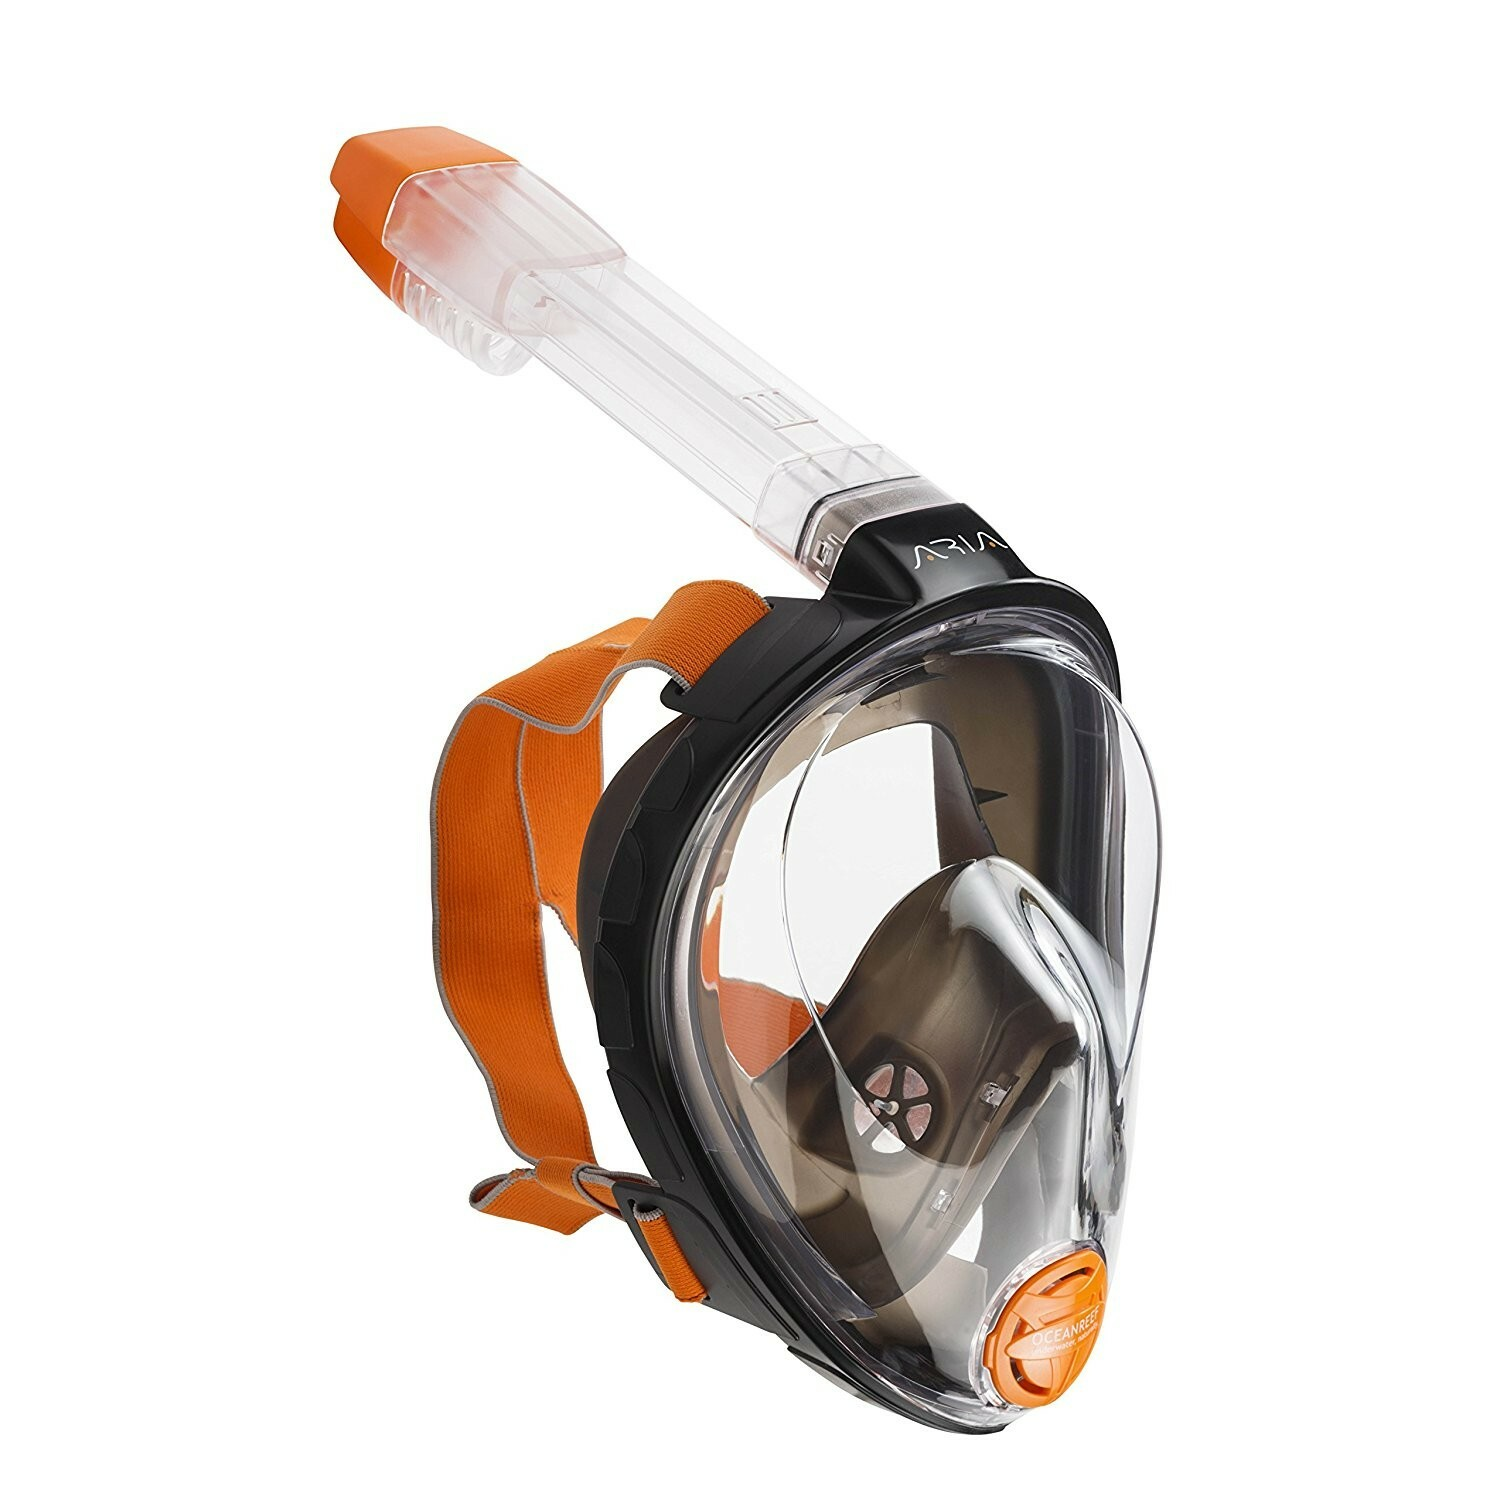 Ocean Reef Aria QR+ Full Face Snorkel Mask with Camera Holder Side View - Black